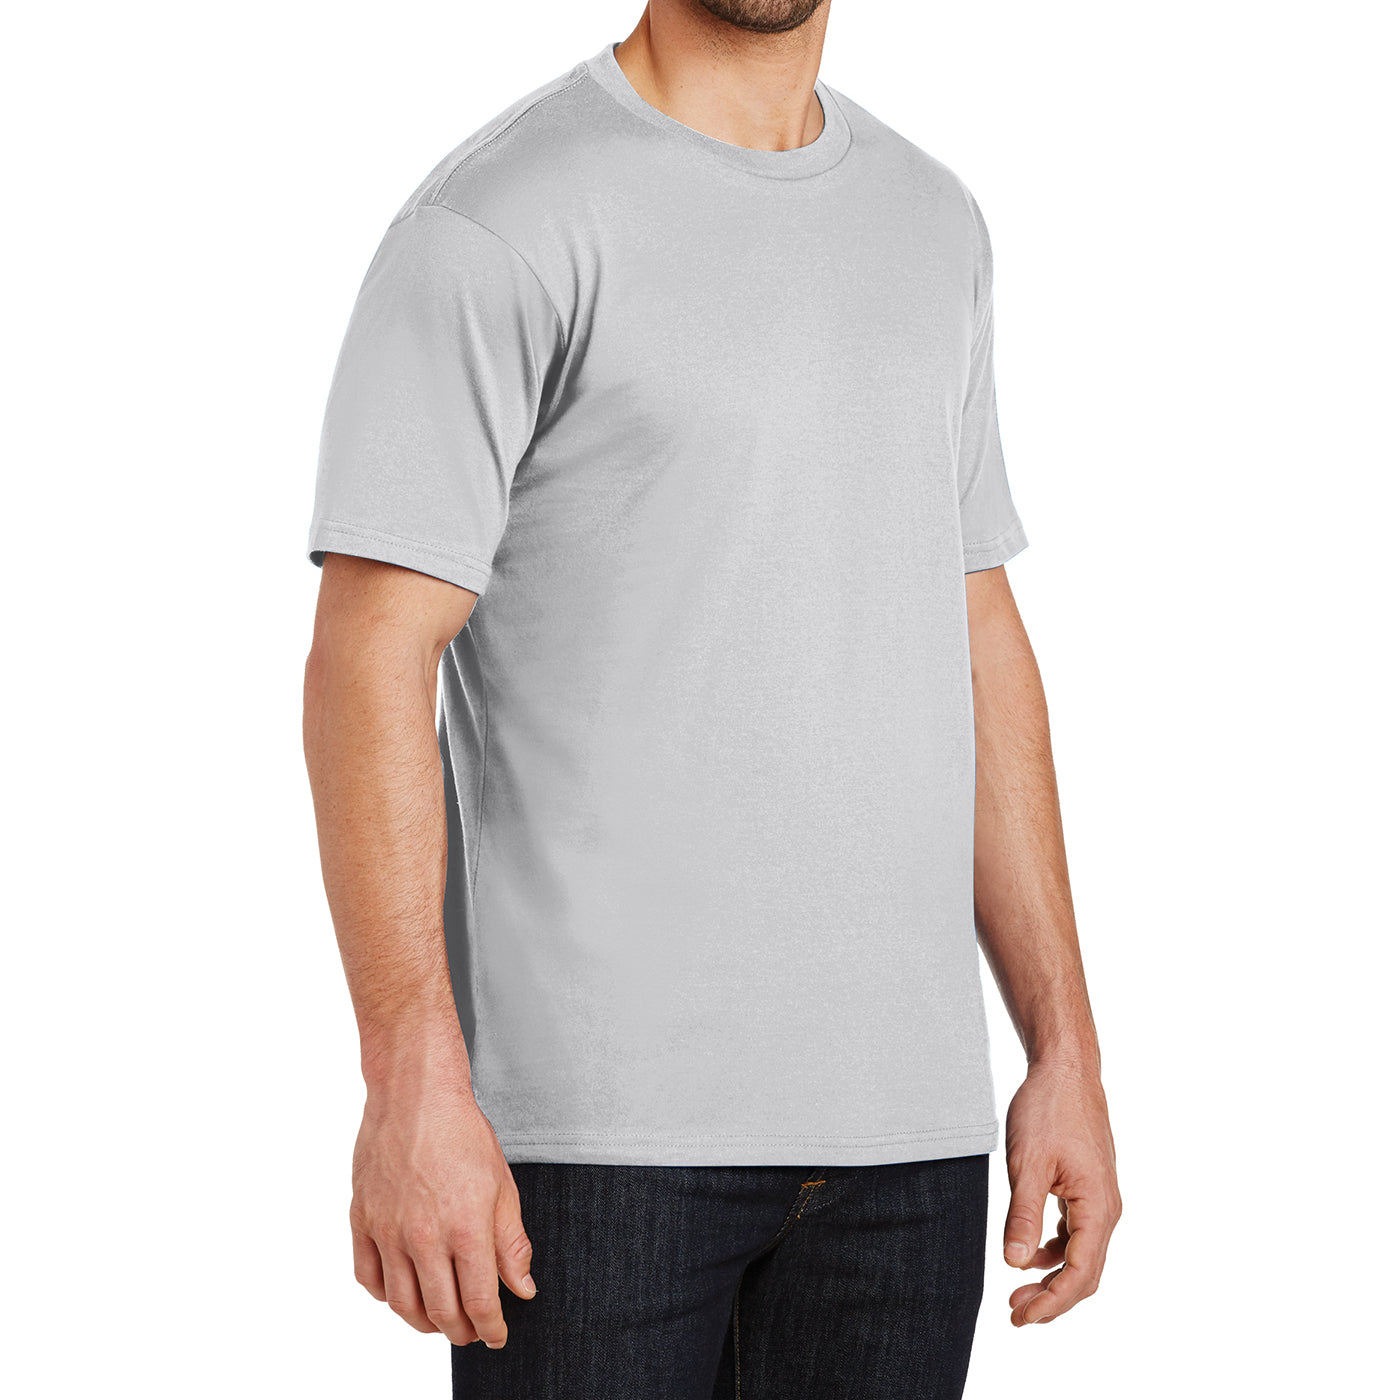 Mens Perfect Weight Crew Tee - Silver - Side